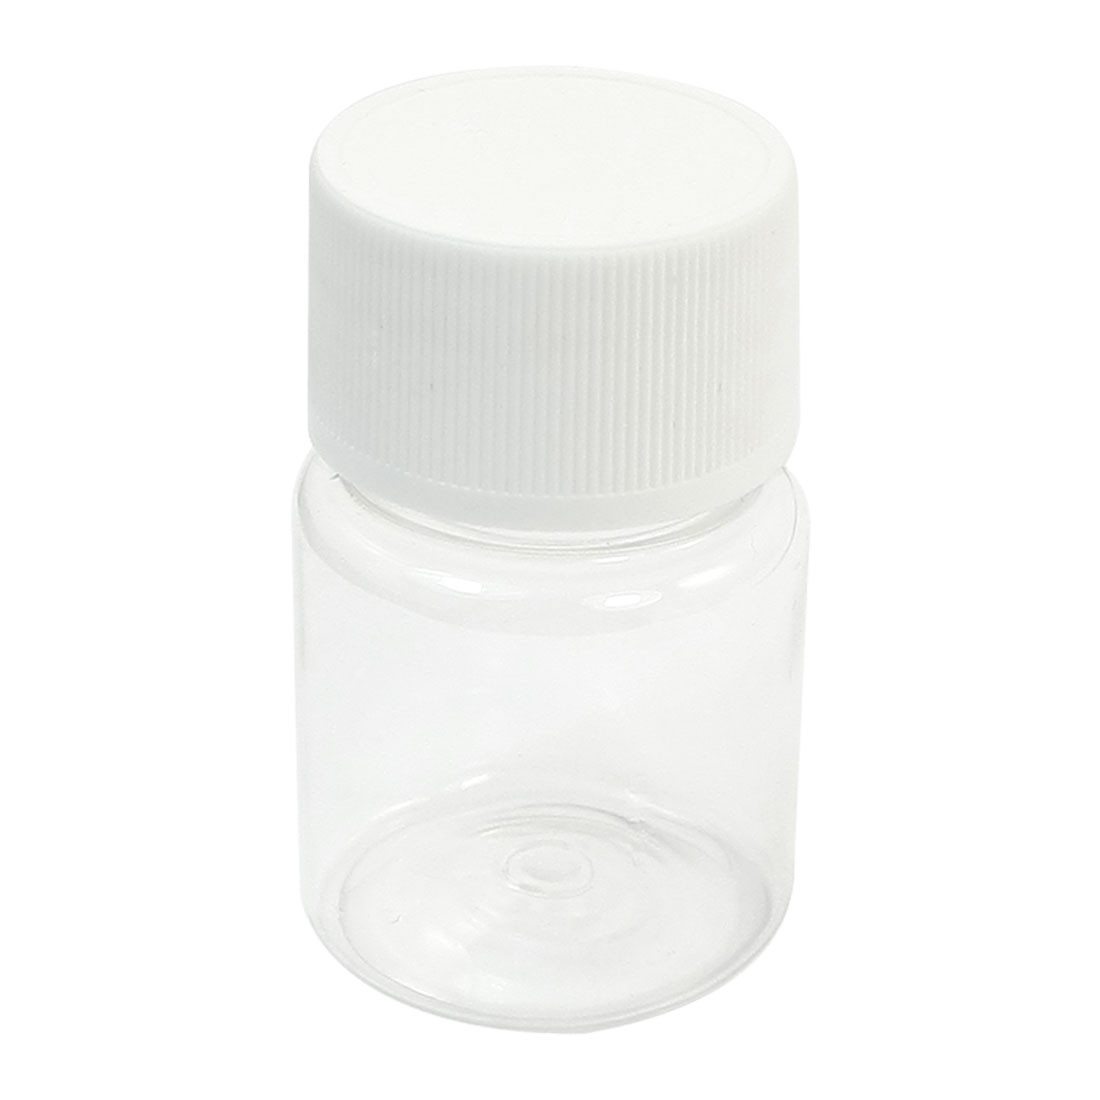 30mL Capacity 5.5cm x 3.5cm 23mm Dia Wide Mouth Clear Body White Skidproof Cap Plastic Cylinder Shape Chemistry Storage Case Bottle for Laboratory